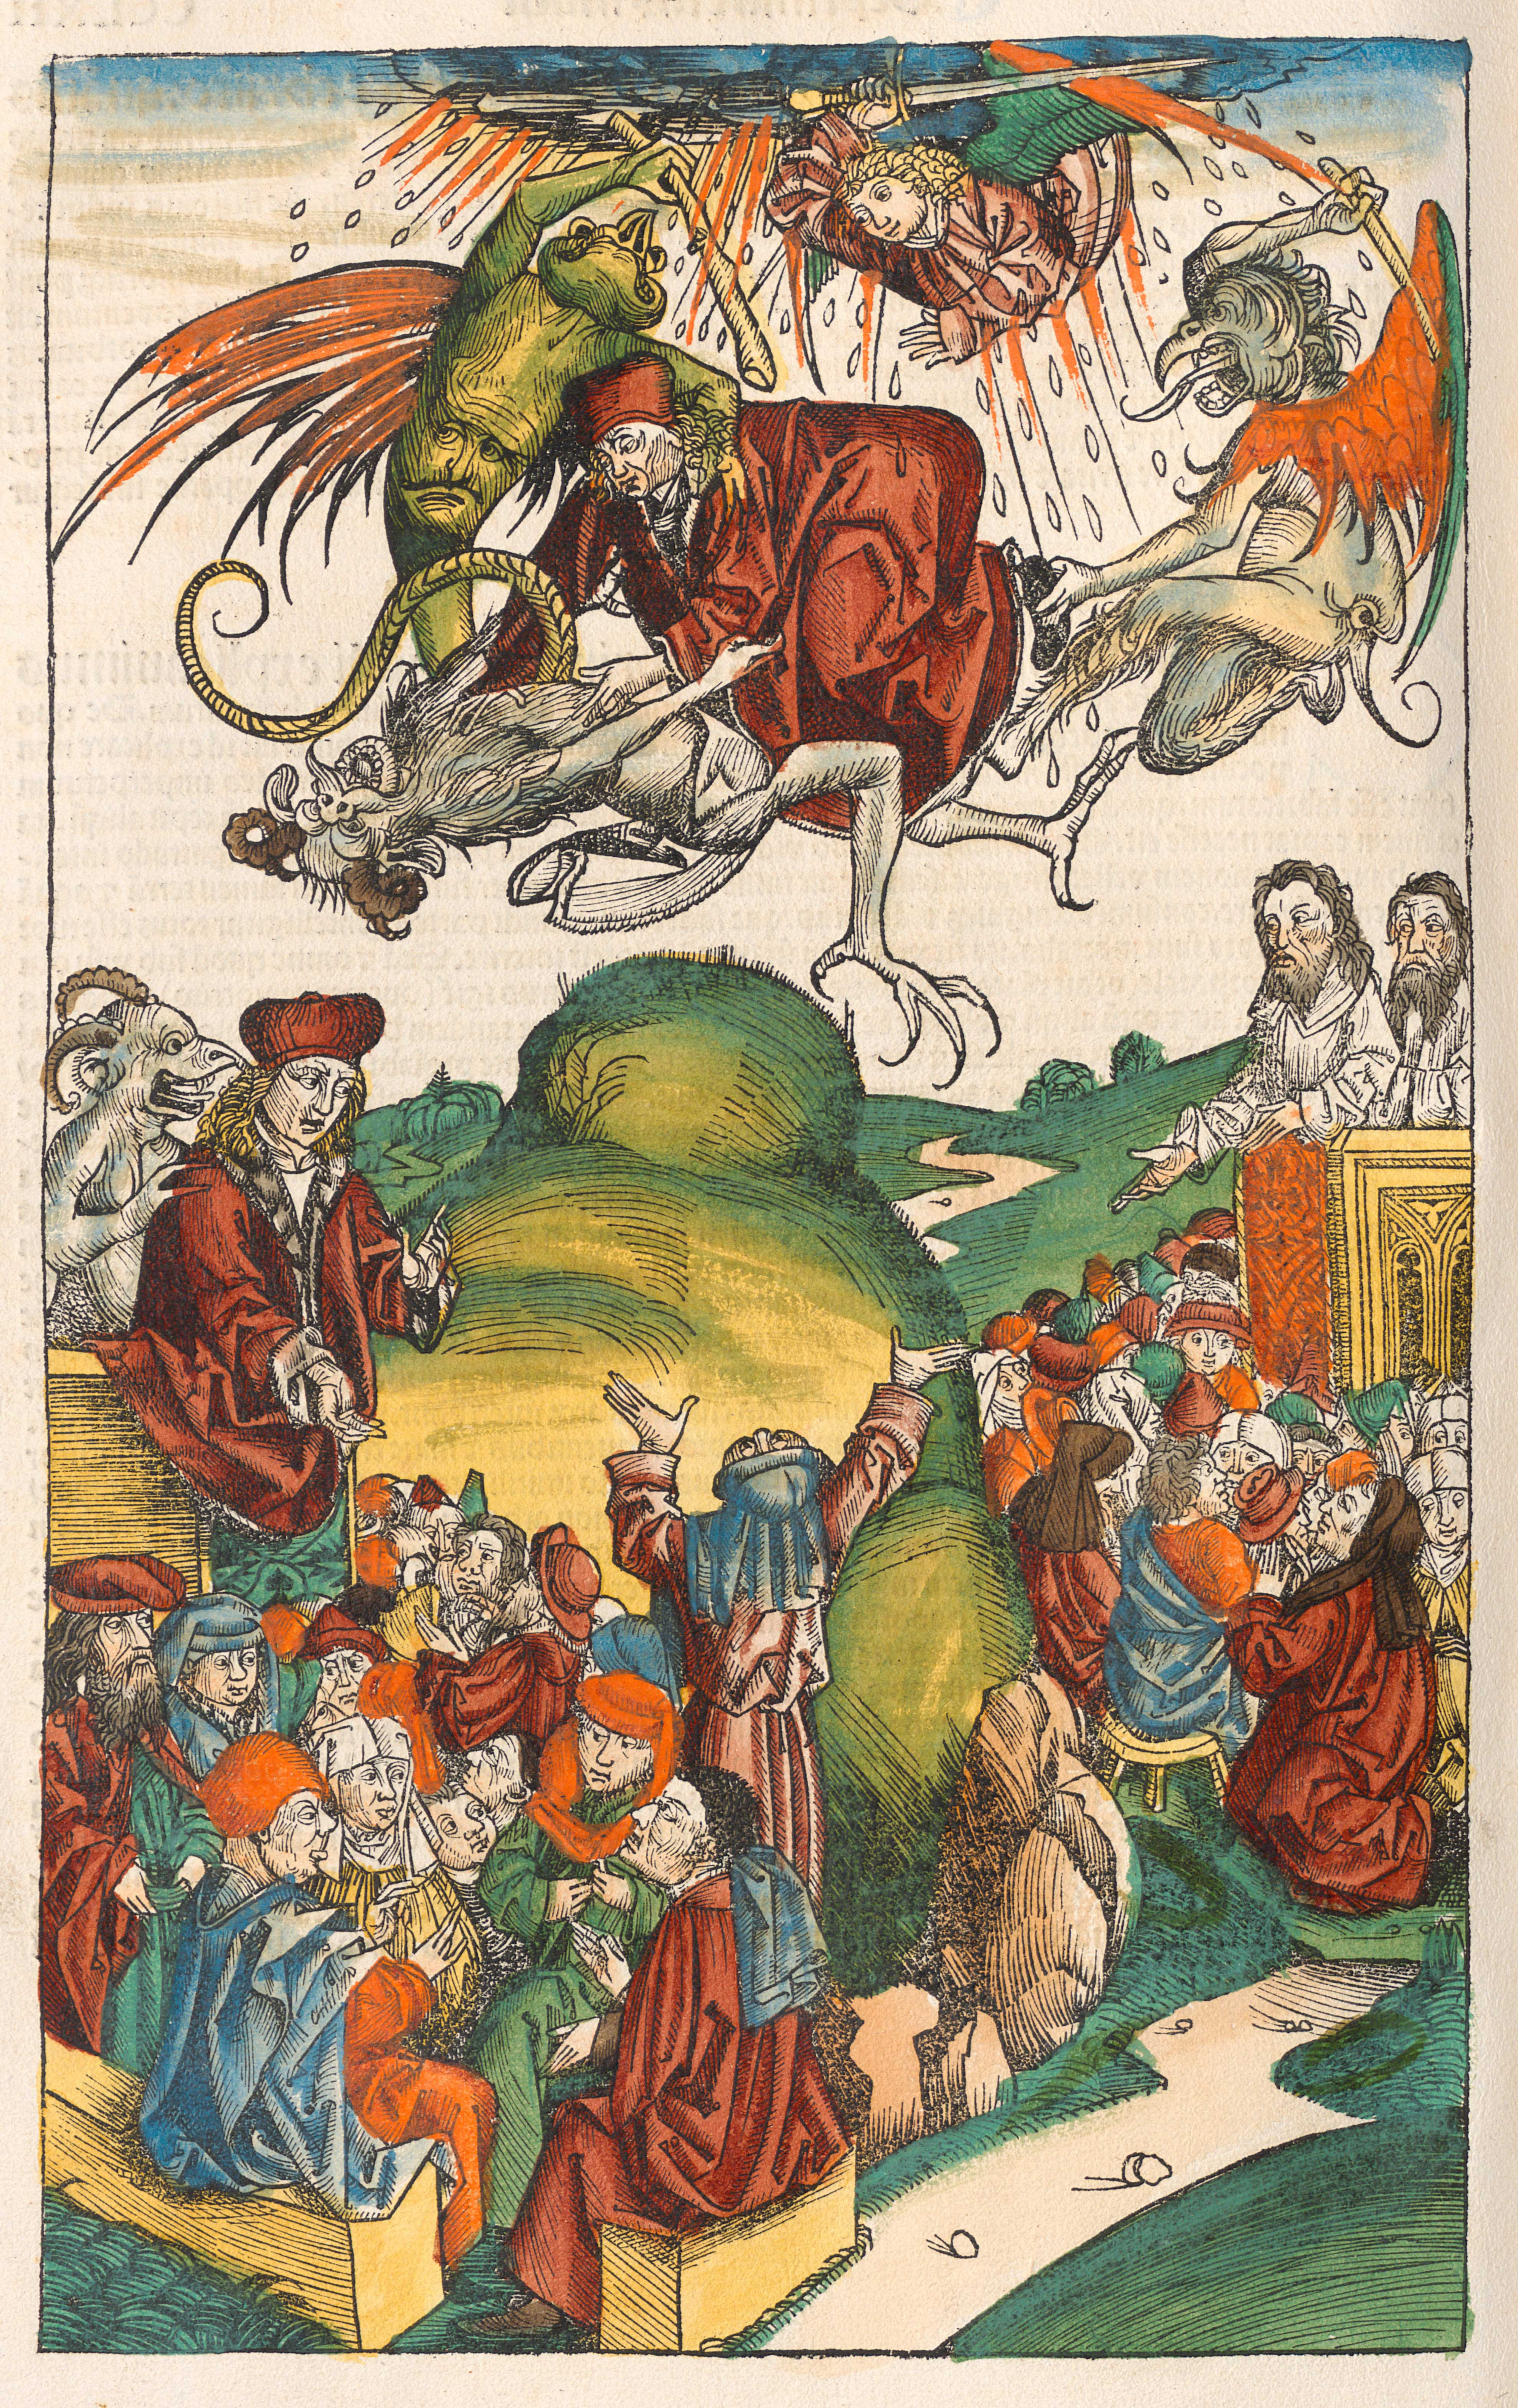 The death of Simon Magus, from the Nuremberg Chronicle or Liber Chronicarum, 1493